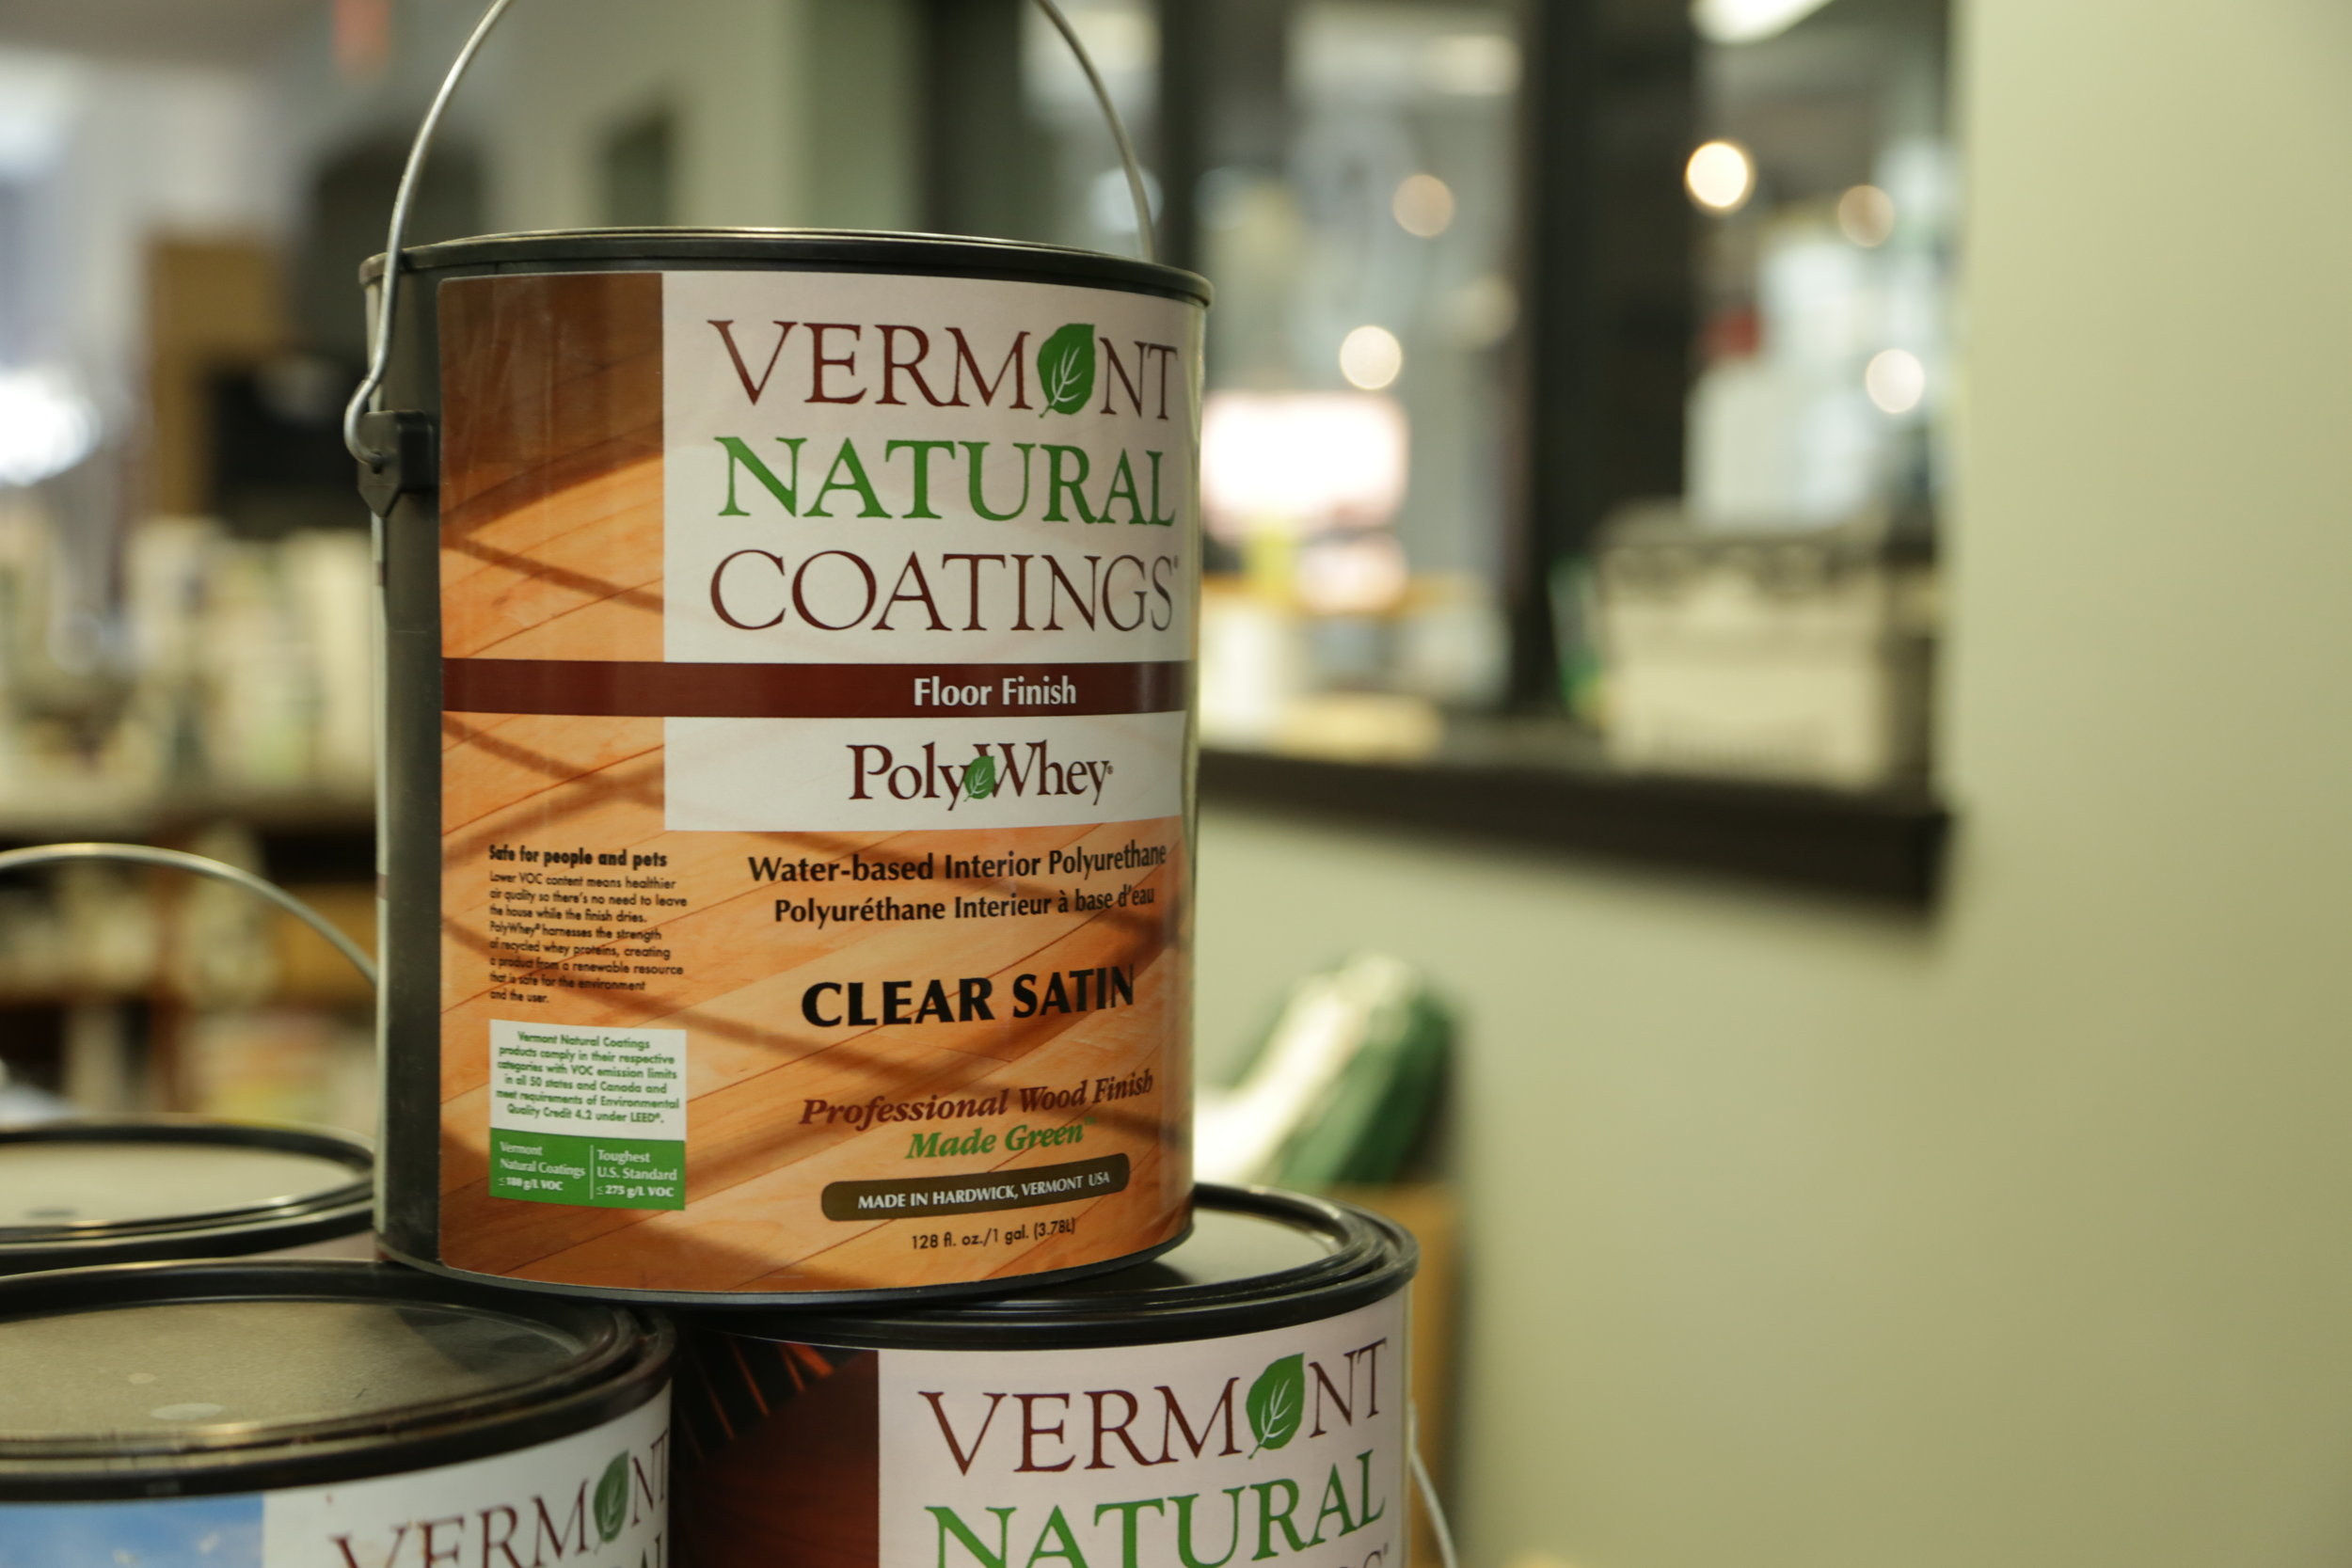 Vermont Natural Coatings  Vermont Natural Coatings has created a new category of wood finish called PolyWhey. It has durability of oil-based finishes and the advantages of water-based finishes.